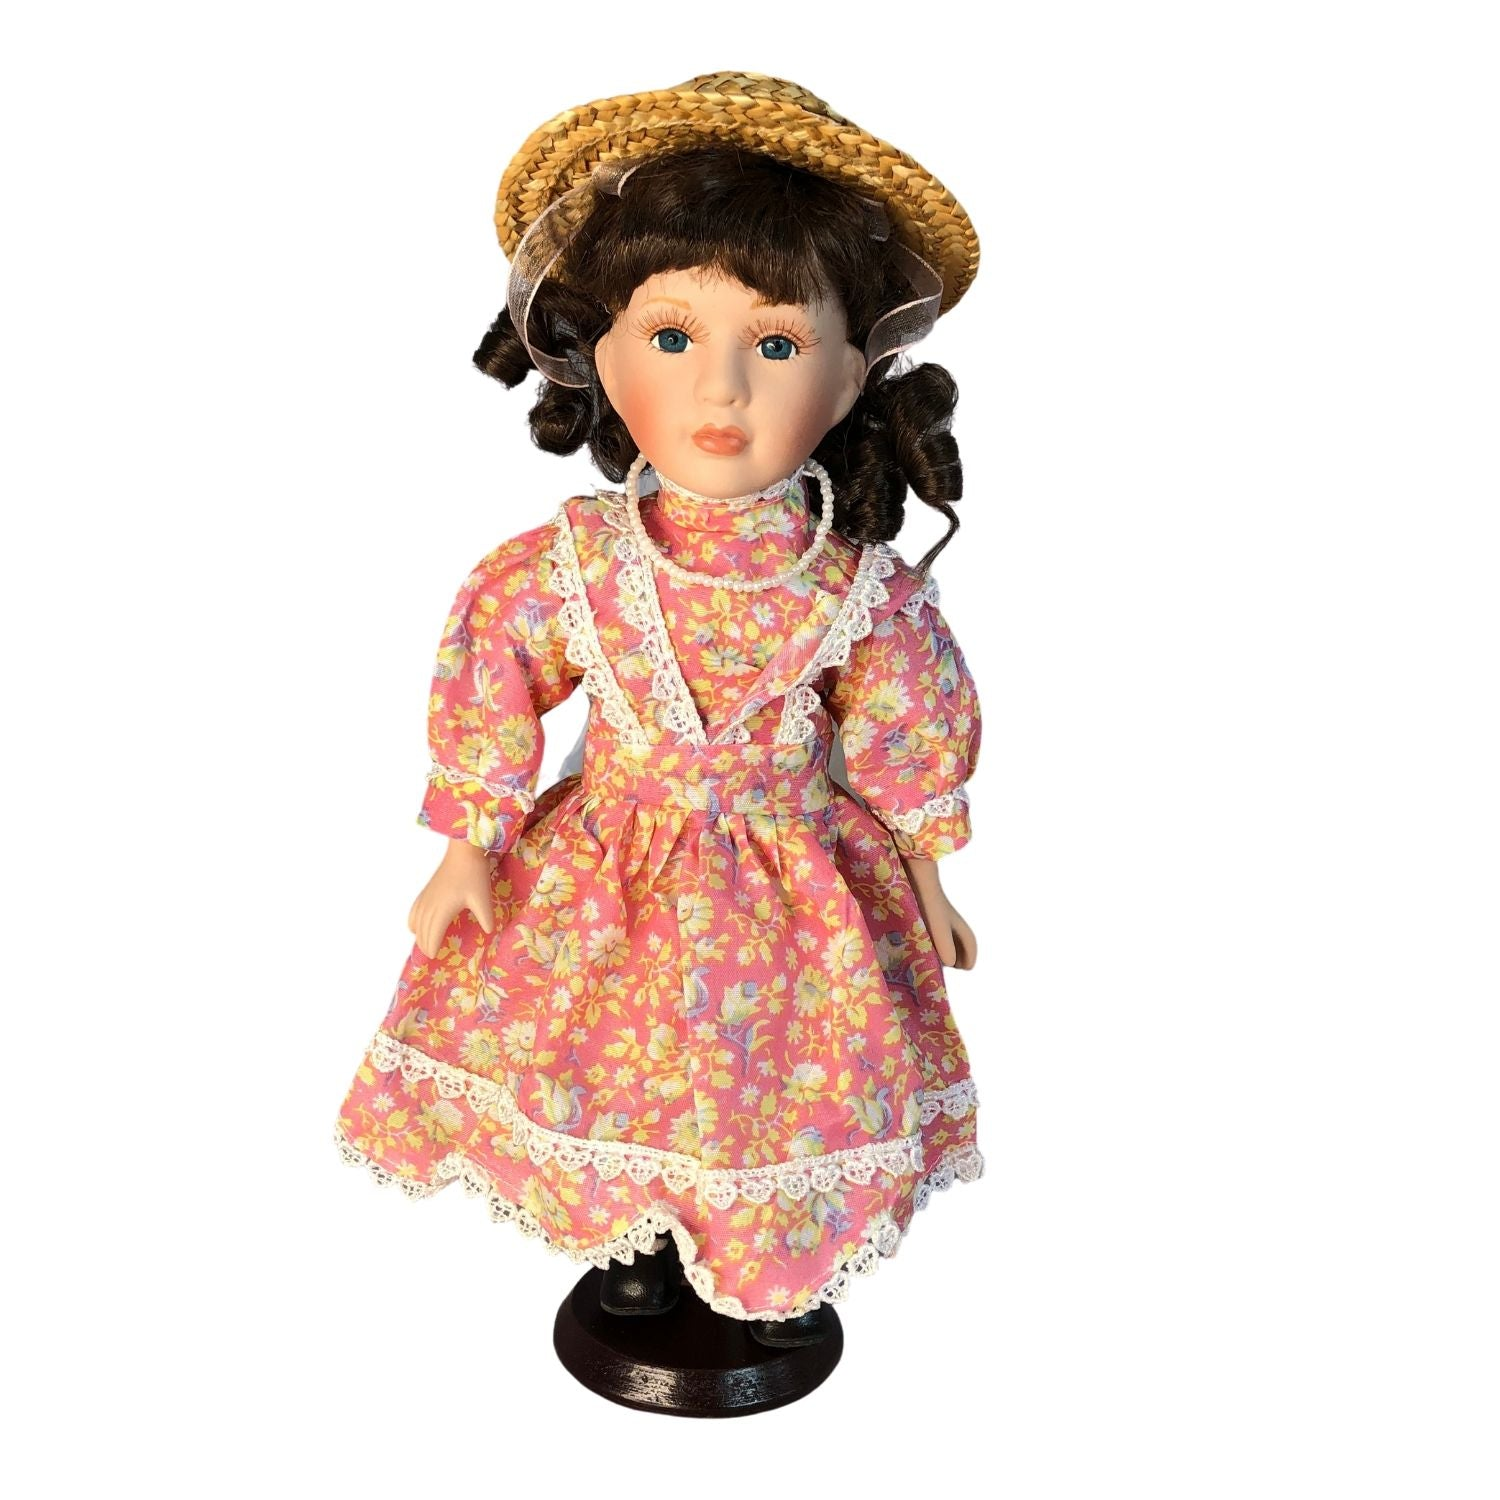 Diana porcelain doll Anne of Green Gables